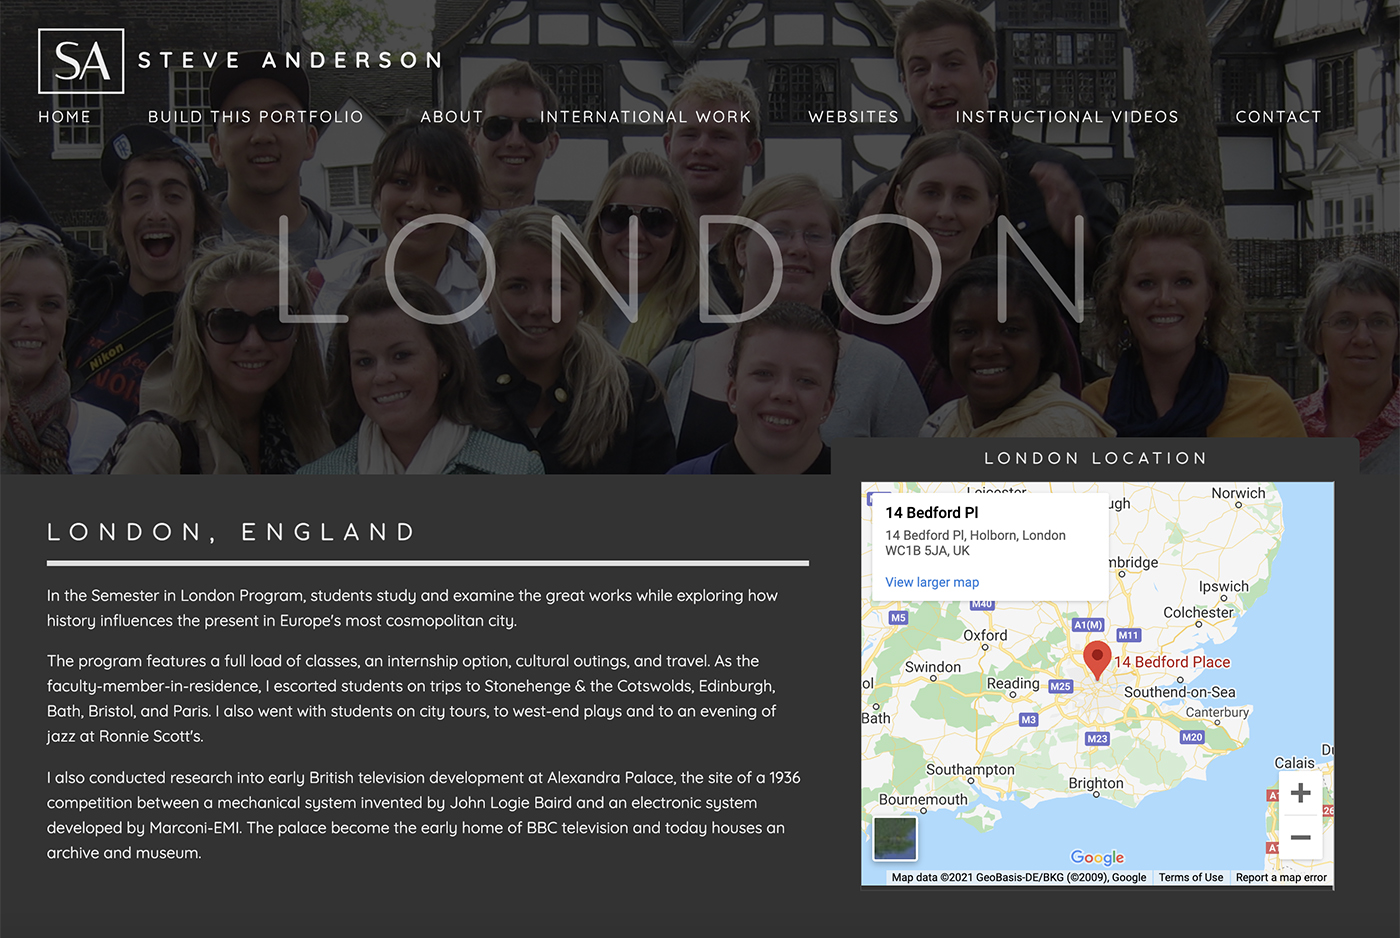 London page in dark mode